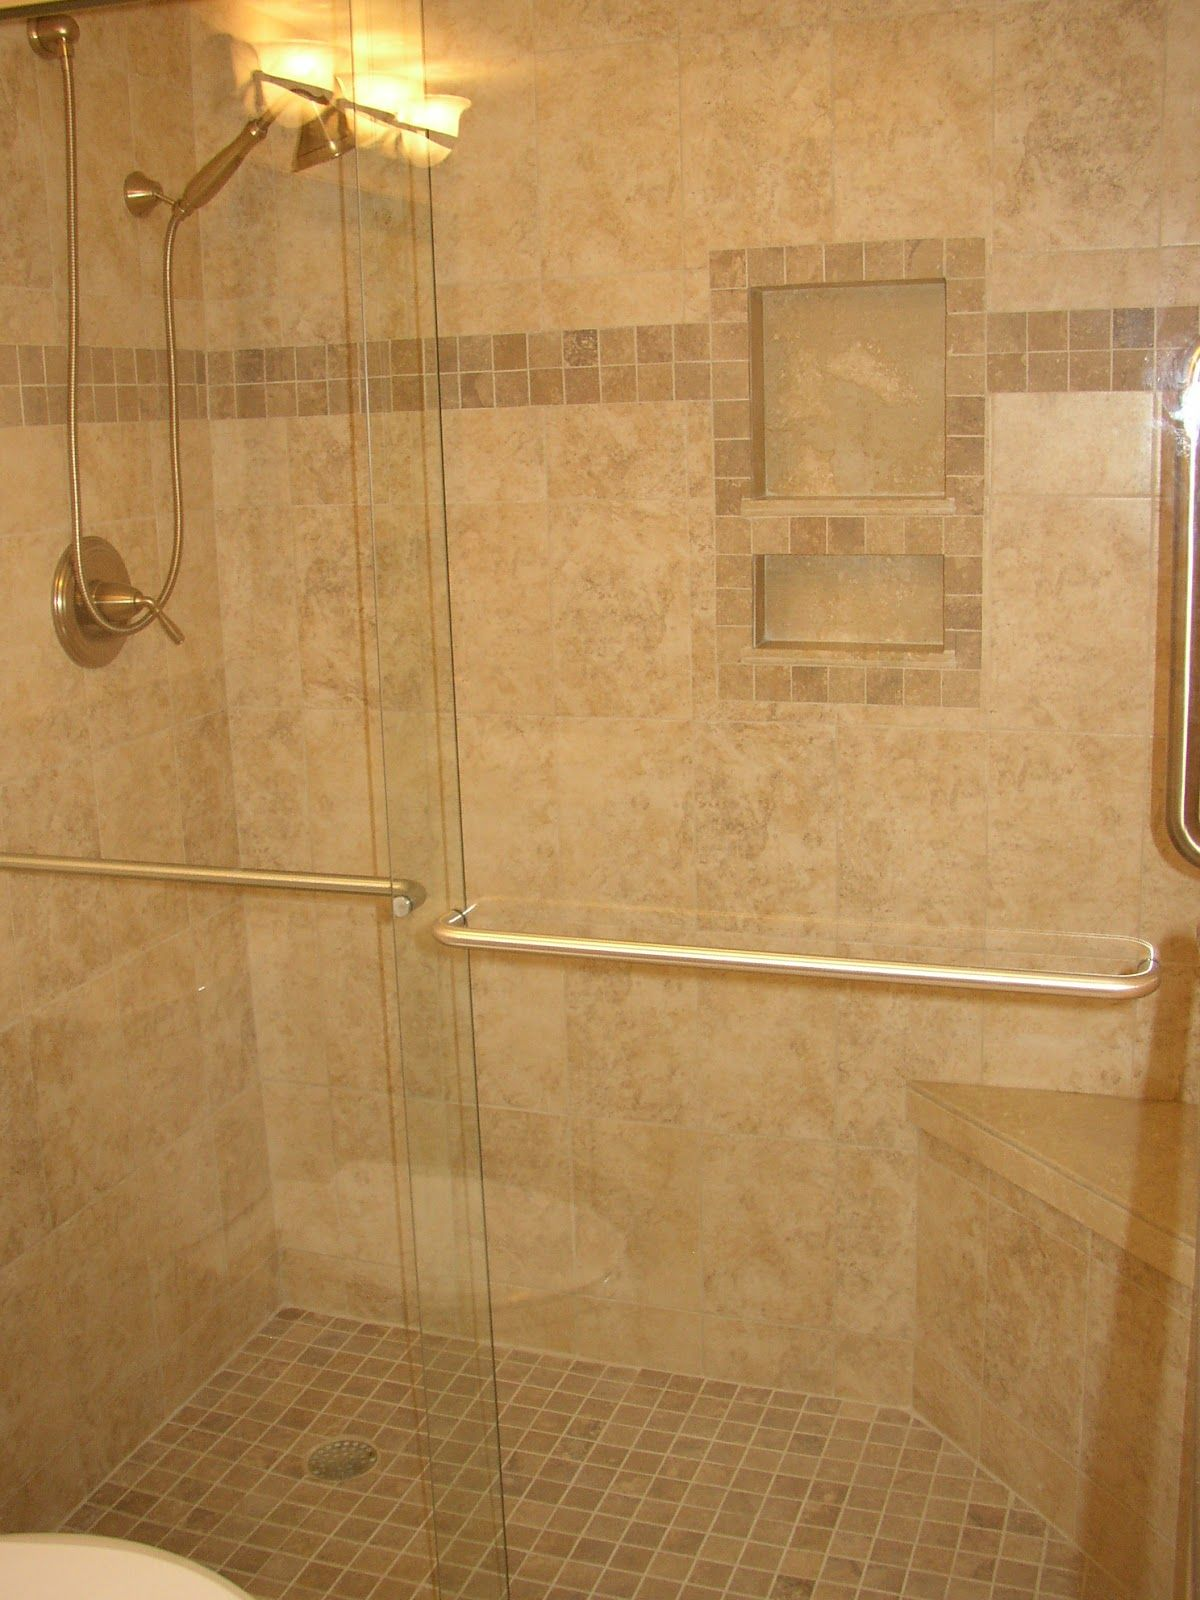 Bathroom Tile Recessed Shower Niche Installation With Layout Design Ideas Description From Bathroomtilezs Blo